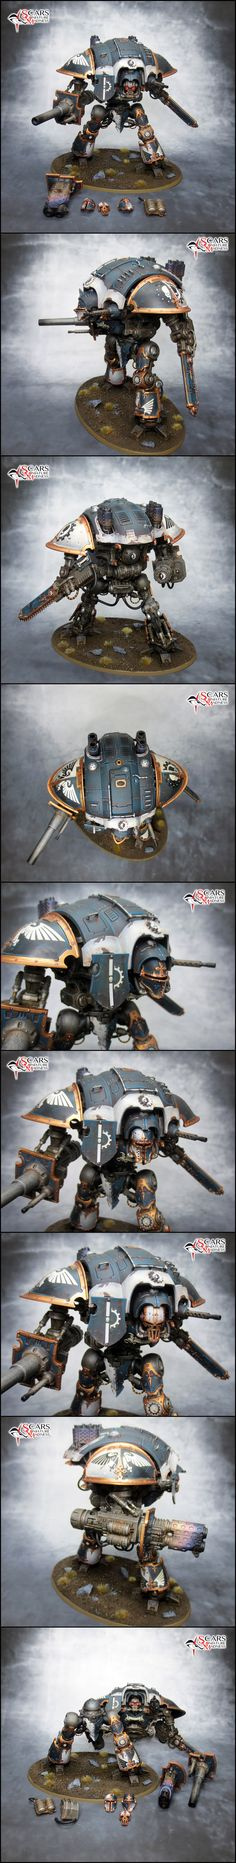 83 Best WarHammer40K Awesomeness images in 2019 | Game